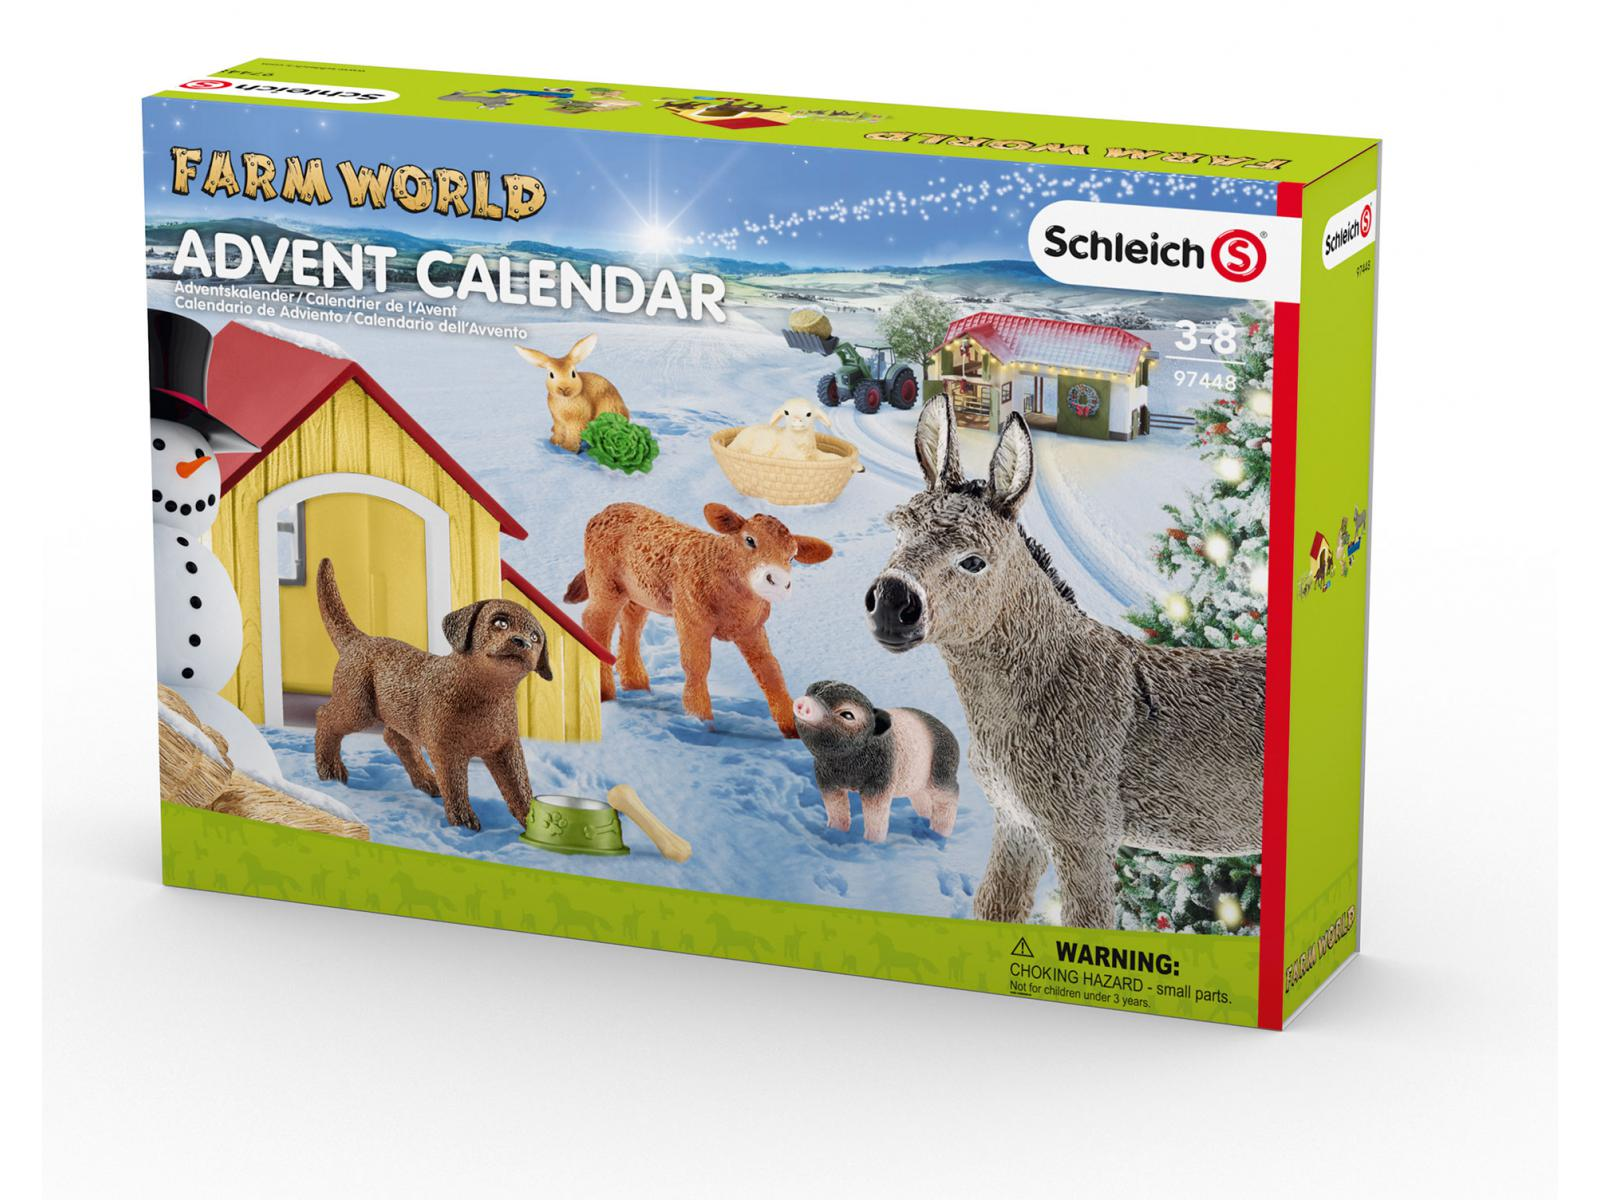 schleich calendrier de l 39 avent farm world 2017. Black Bedroom Furniture Sets. Home Design Ideas